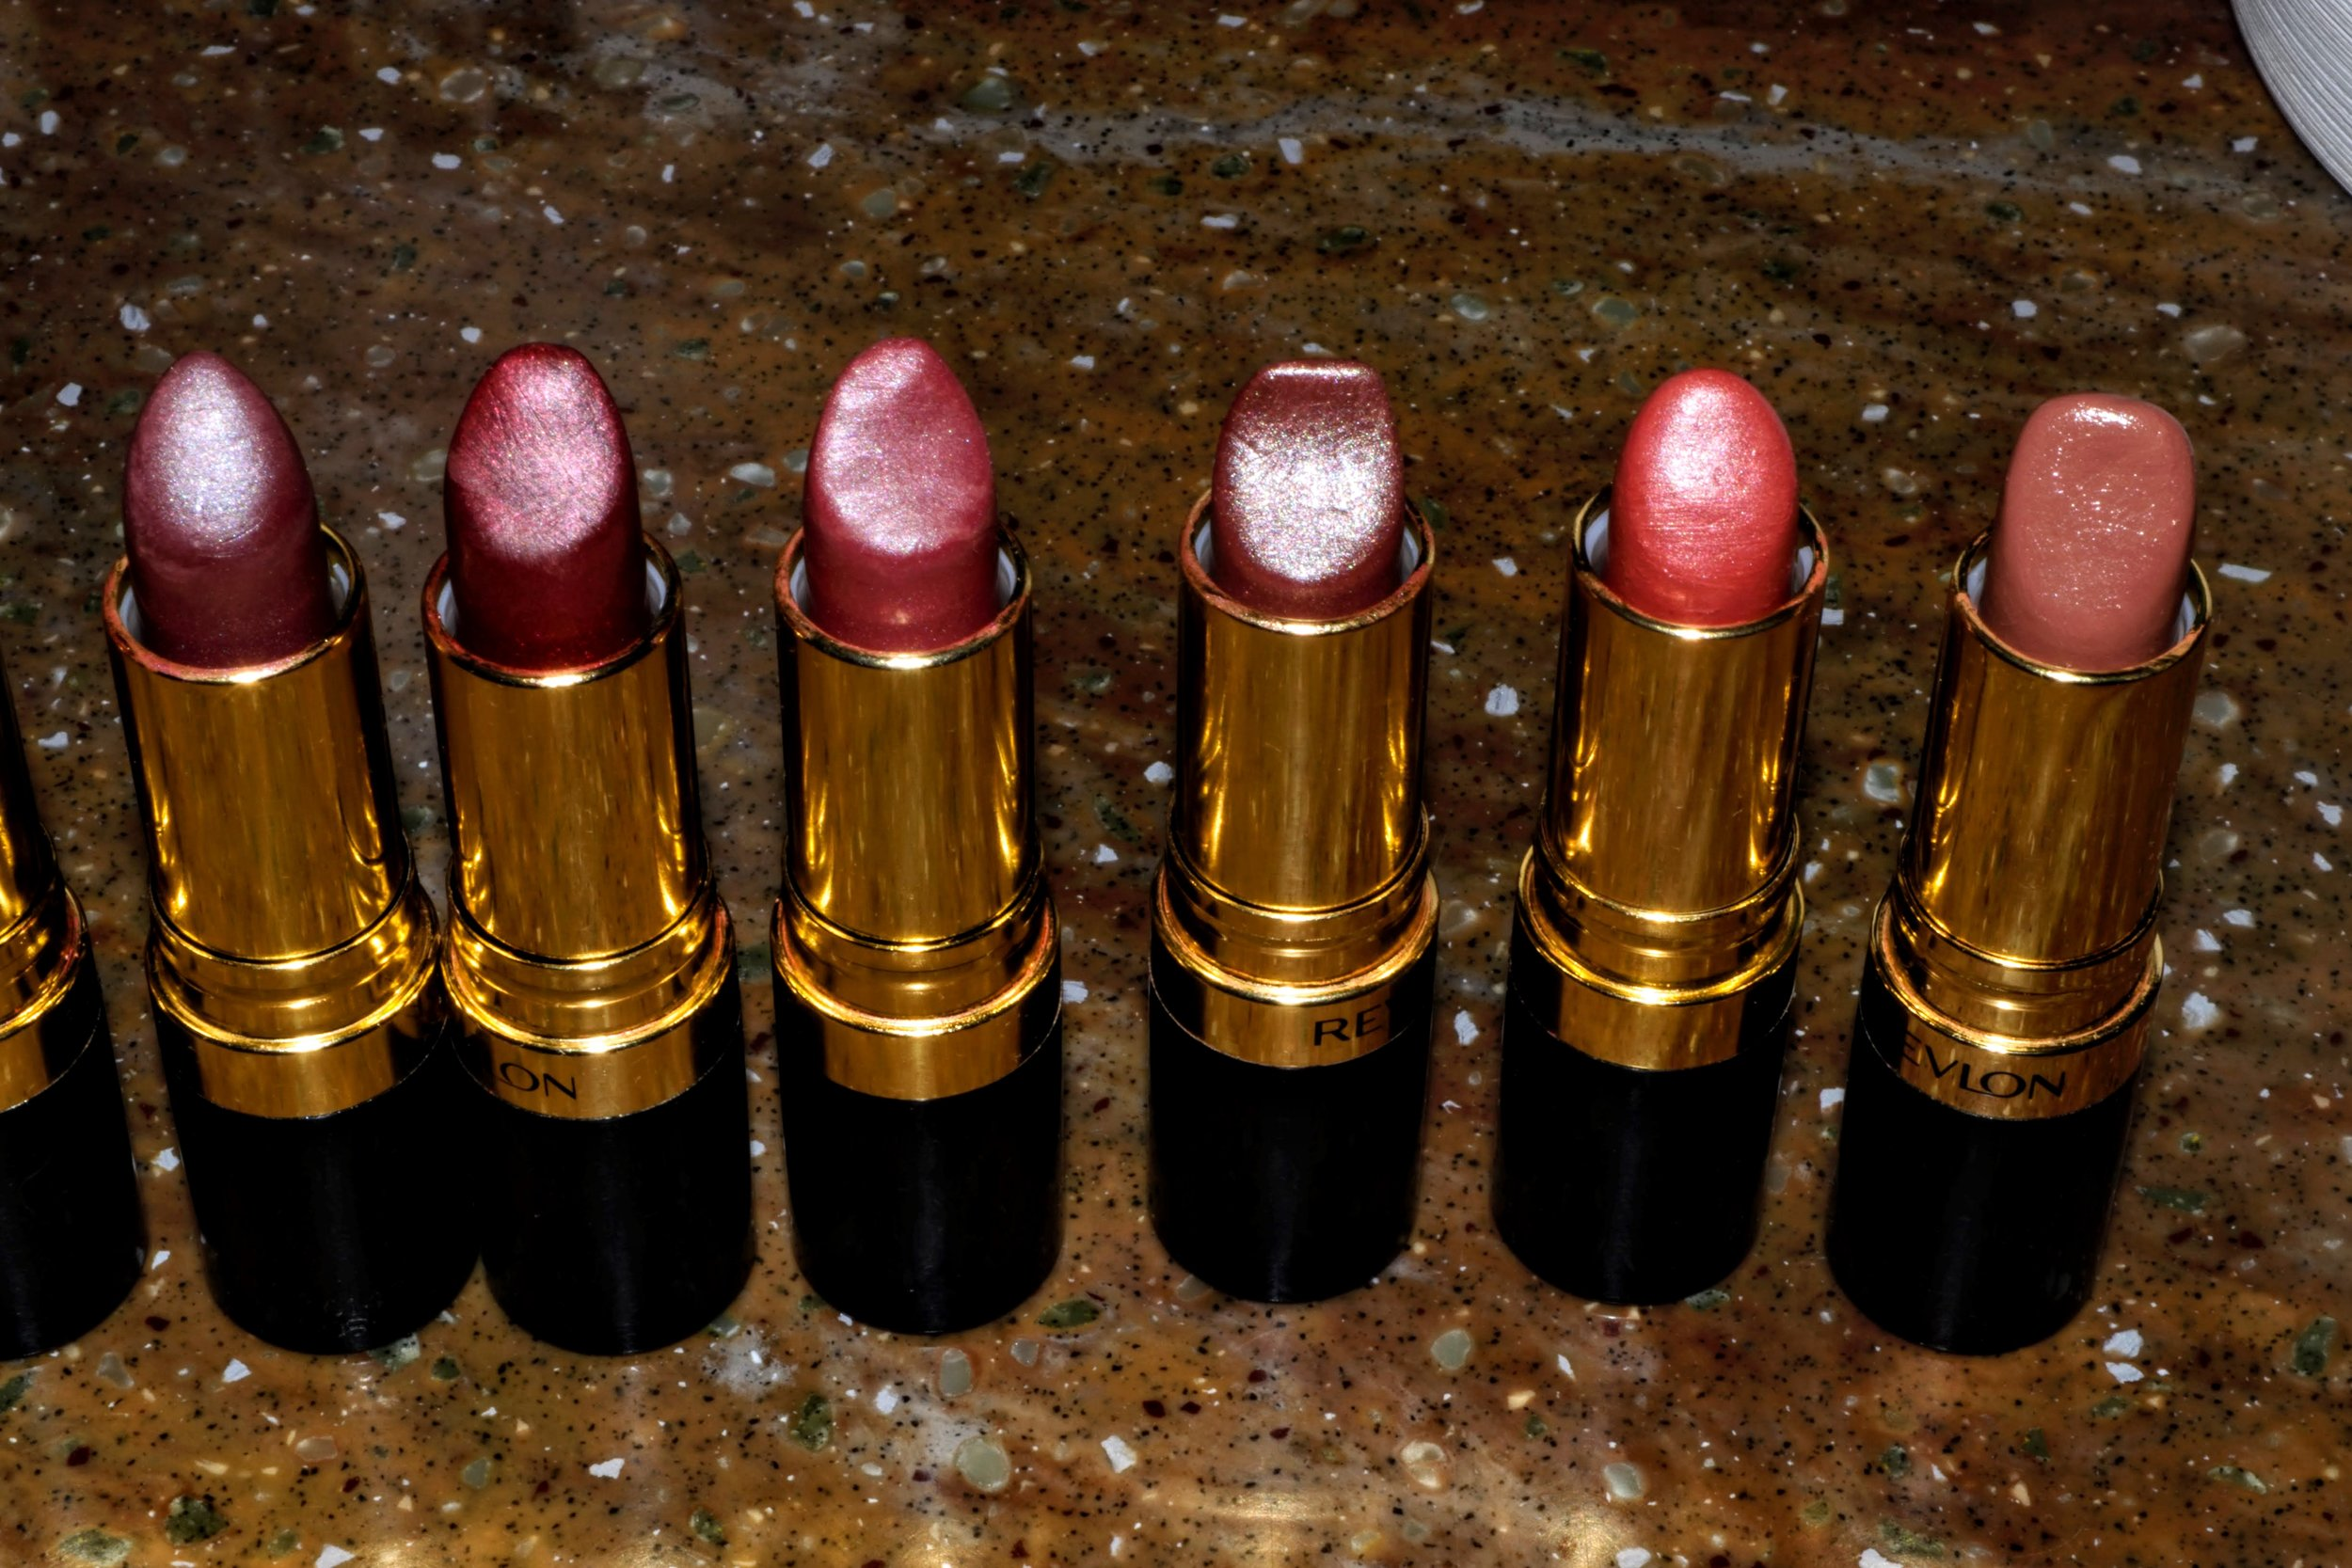 I love purple - The best thing about their range is the incorporation of purples. Sadly, I can't wear the pinks I've bought because it washes my skin out. I have a golden undertone, so the best shades I recommend are purples, browns, terracotta, and yellow/golds.